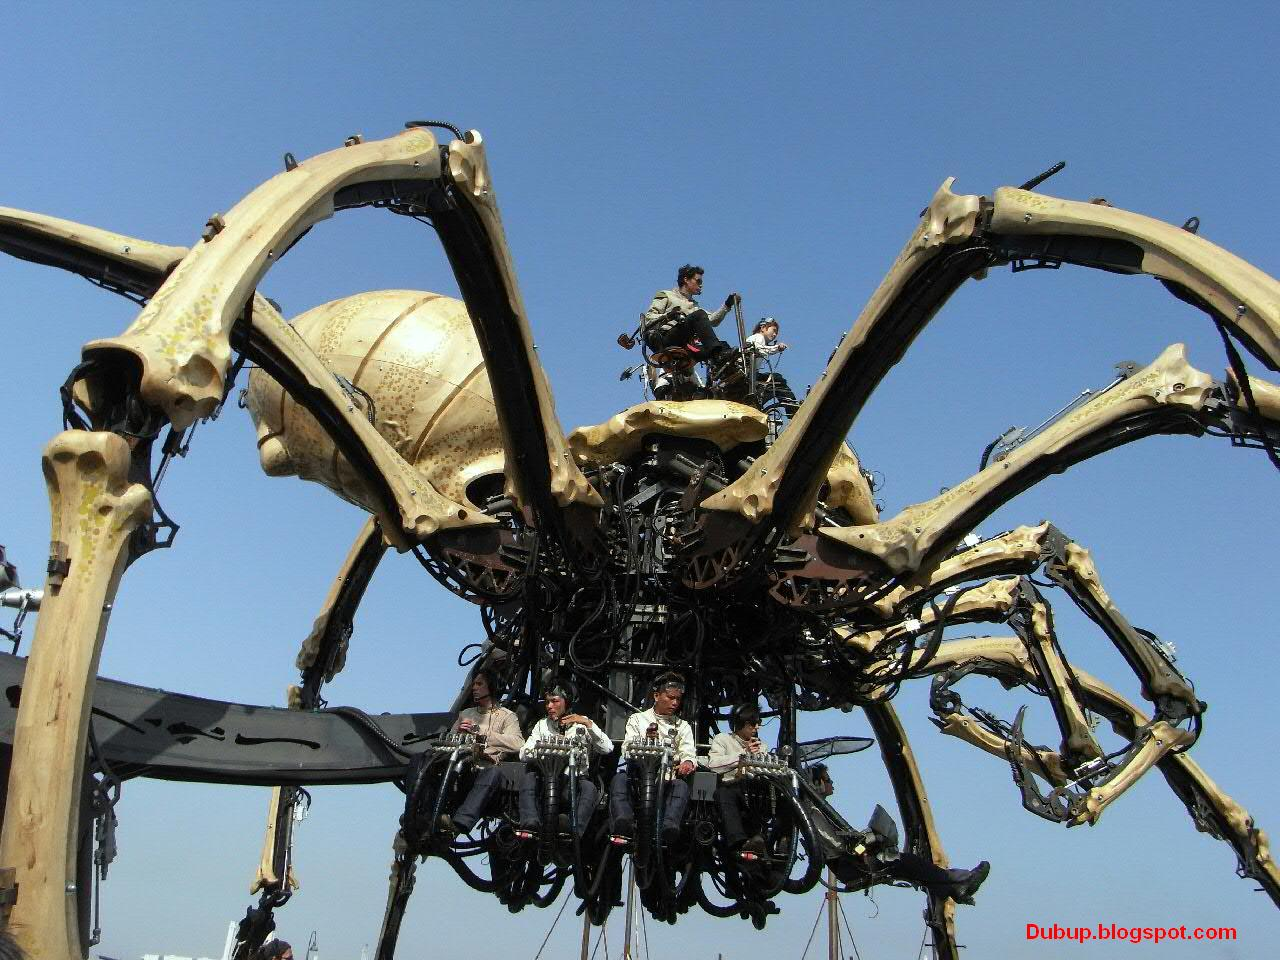 Dub Up : The Giant Spider